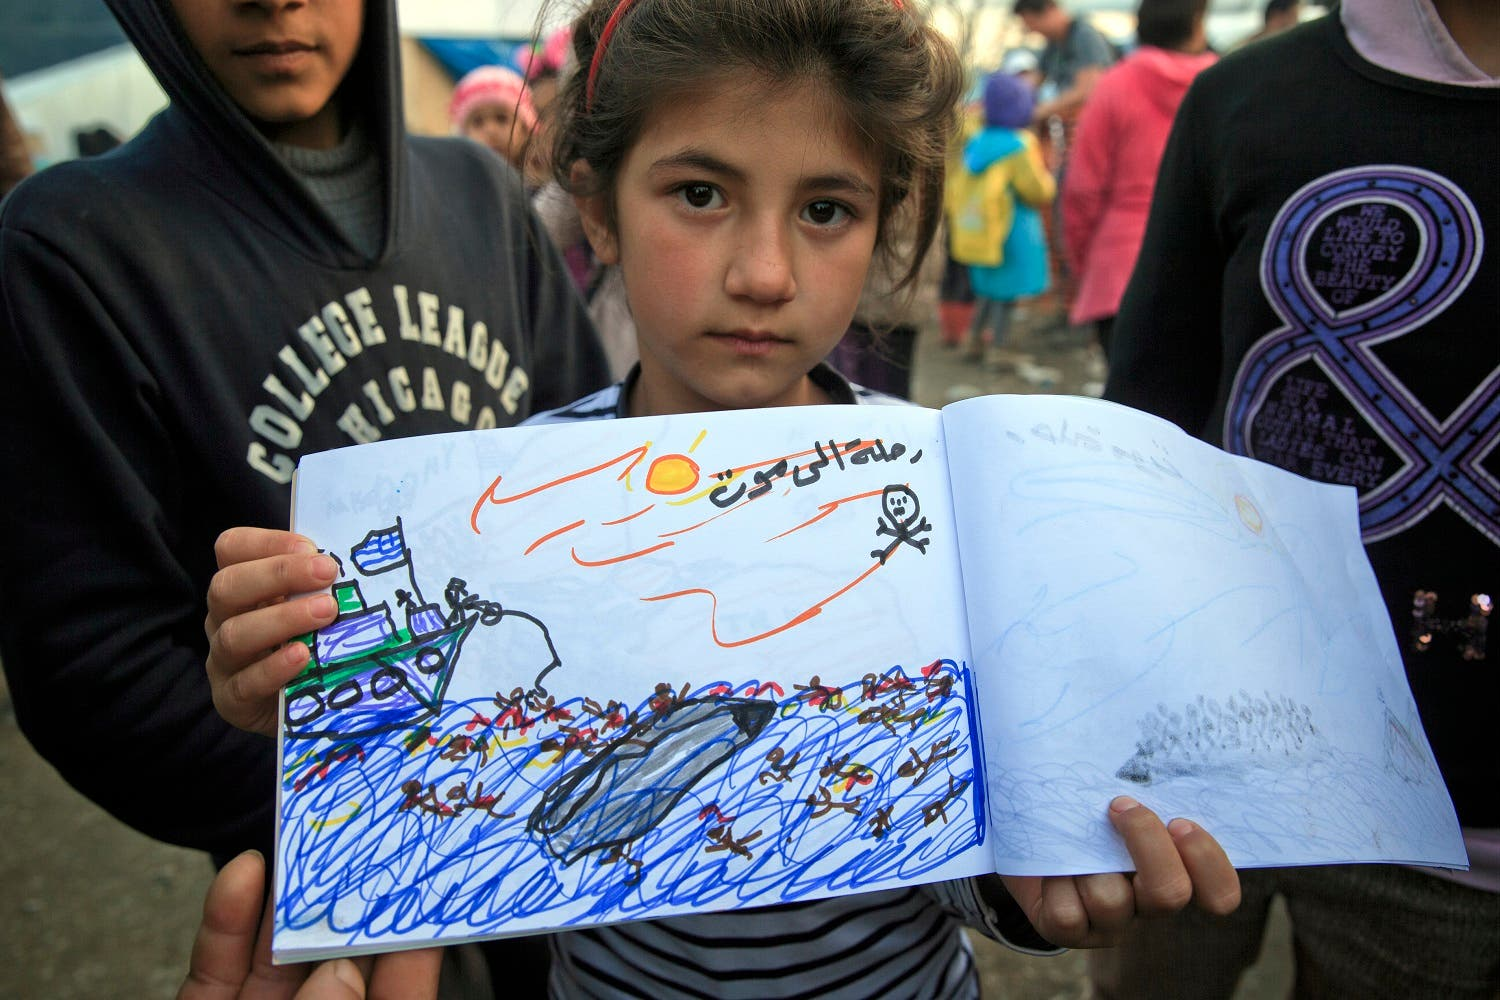 Shaharzad Hassan, 8 year-old from the Syrian city of Aleppo poses with a drawing she made, depicting a migrants rescue operation by the Greek navy, at the northern Greek border station of Idomeni, Friday, March 11, 2016. At an overcrowded refugee camp on the Greek-Macedonian border, 8-year-old Shaharzad Hassan draws pictures of the harrowing events in her life over the past 18 months: Pictures of death in her home town of Aleppo, Syria, and her perilous journey to Europe. The title of this drawing seen top right reads